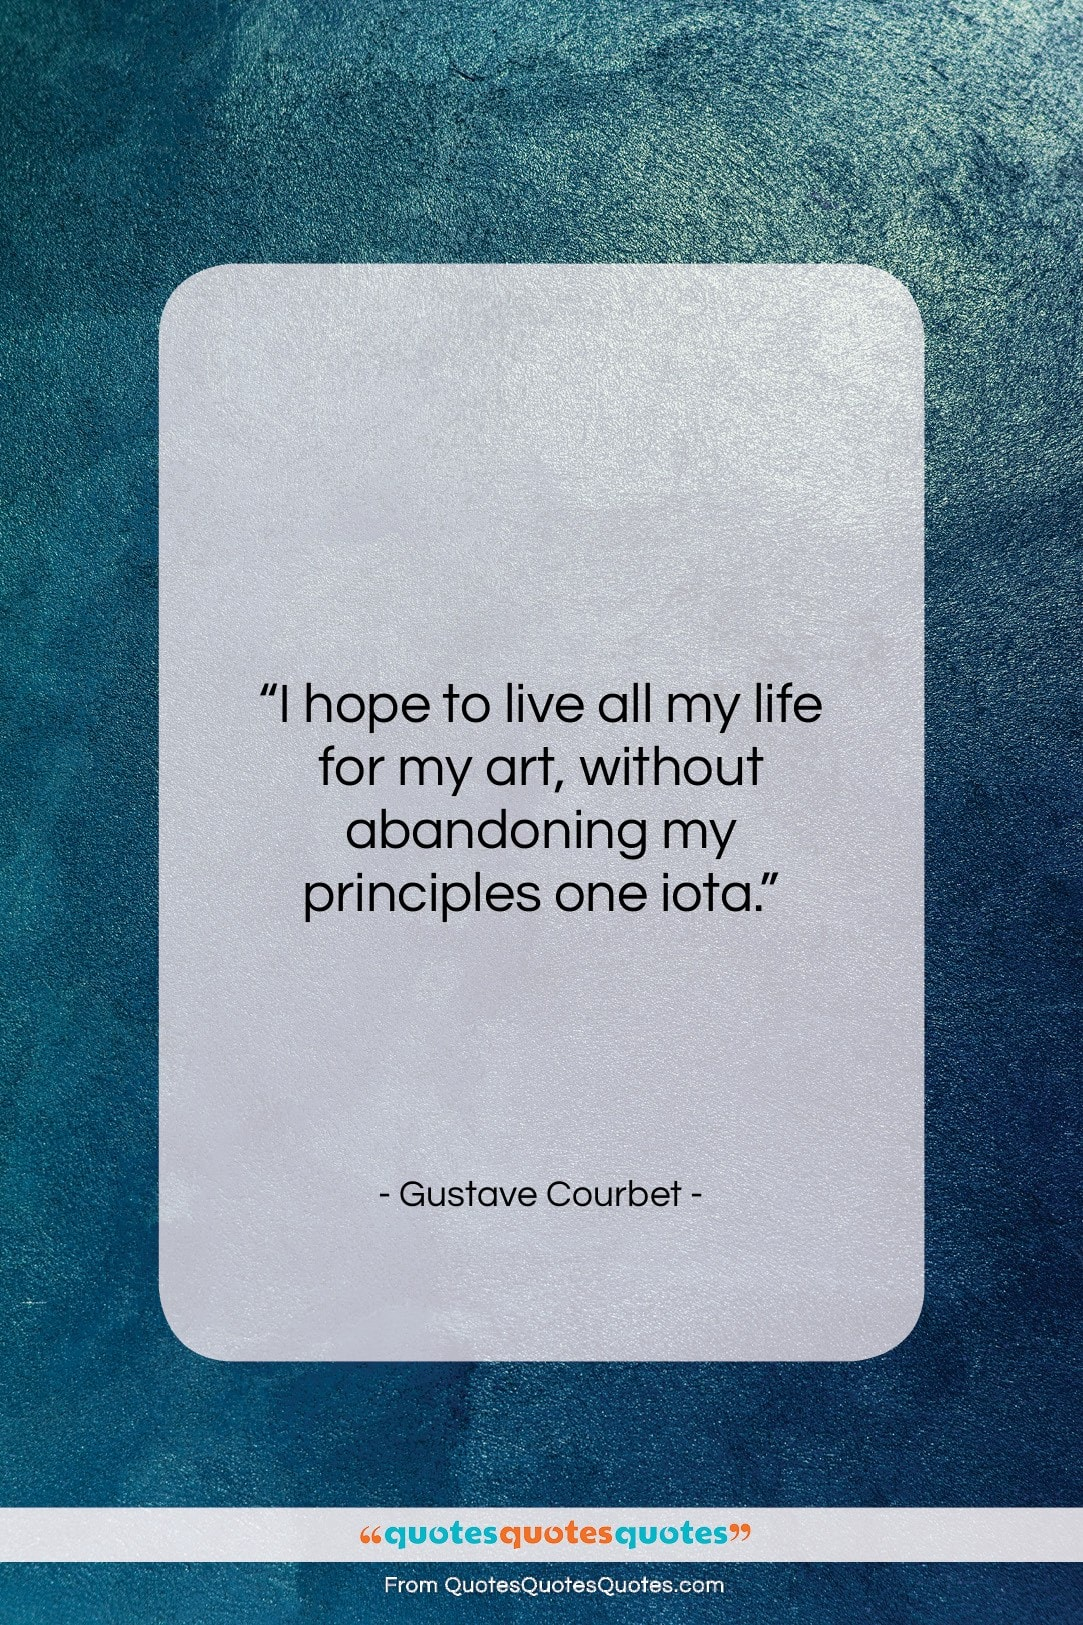 """Gustave Courbet quote: """"I hope to live all my life…""""- at QuotesQuotesQuotes.com"""